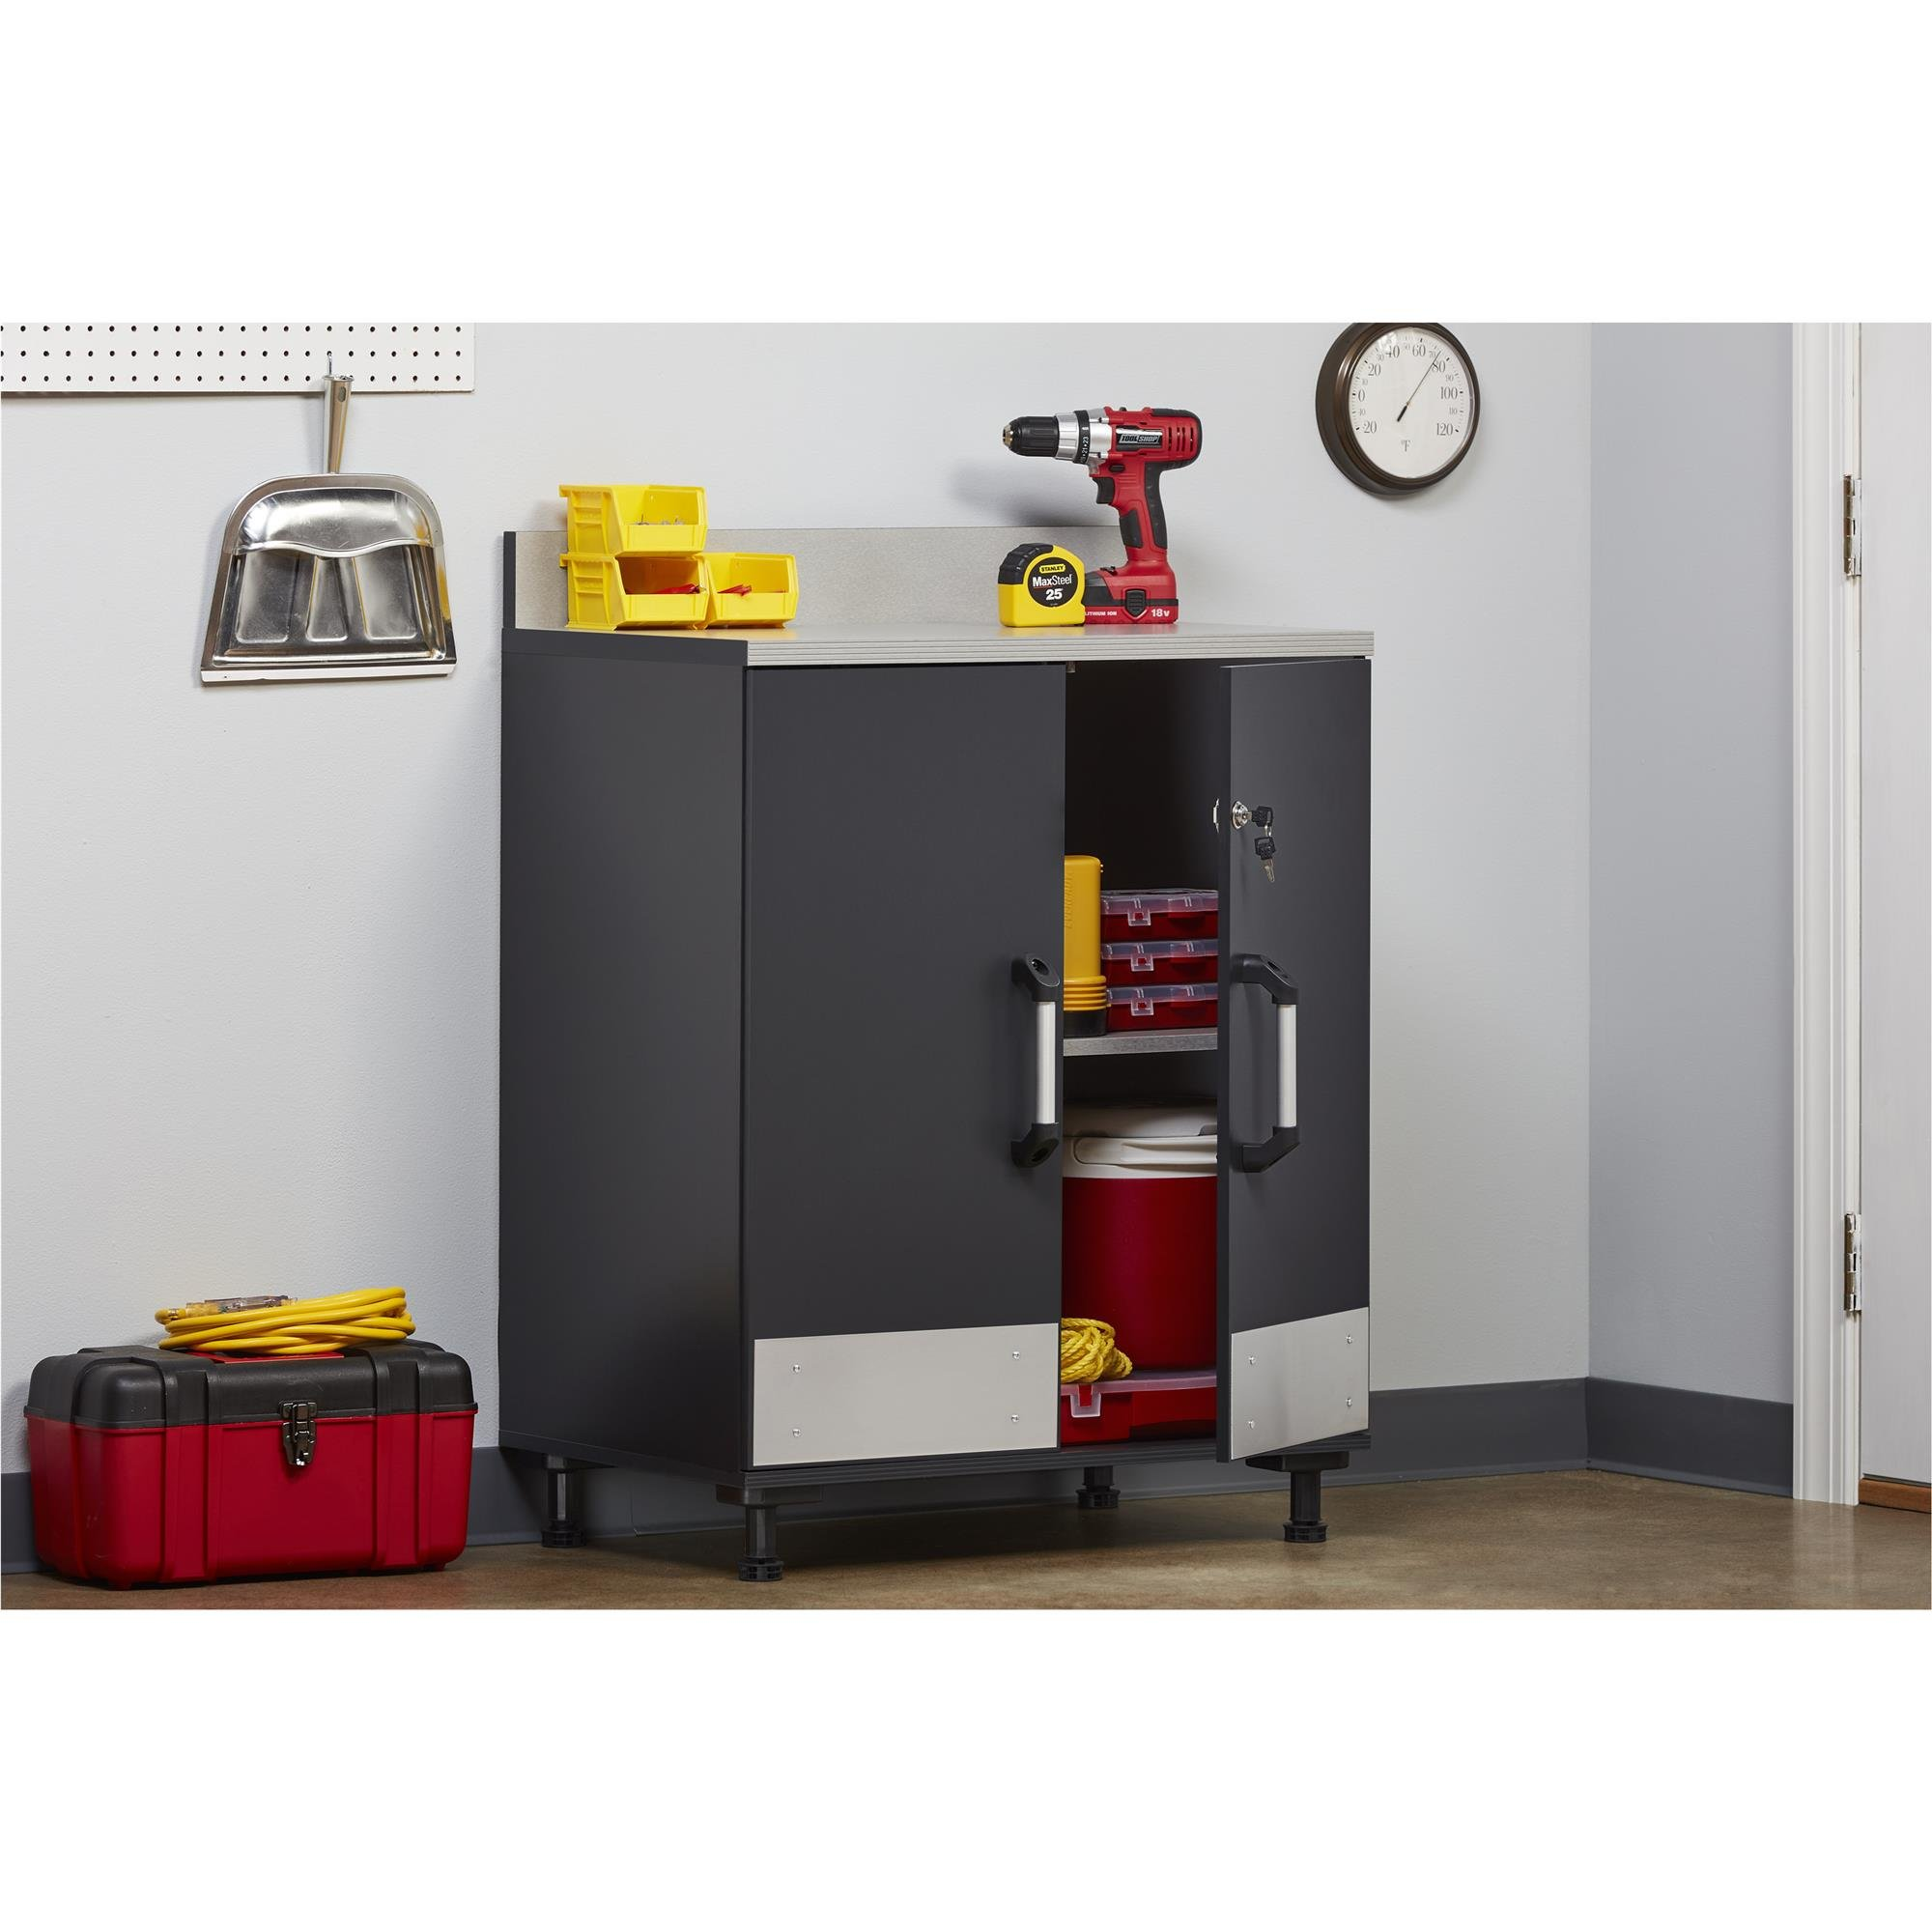 Ameriwood Home Boss -Base Cabinet 2 Door, Charcoal Gray by Ameriwood Home (Image #2)